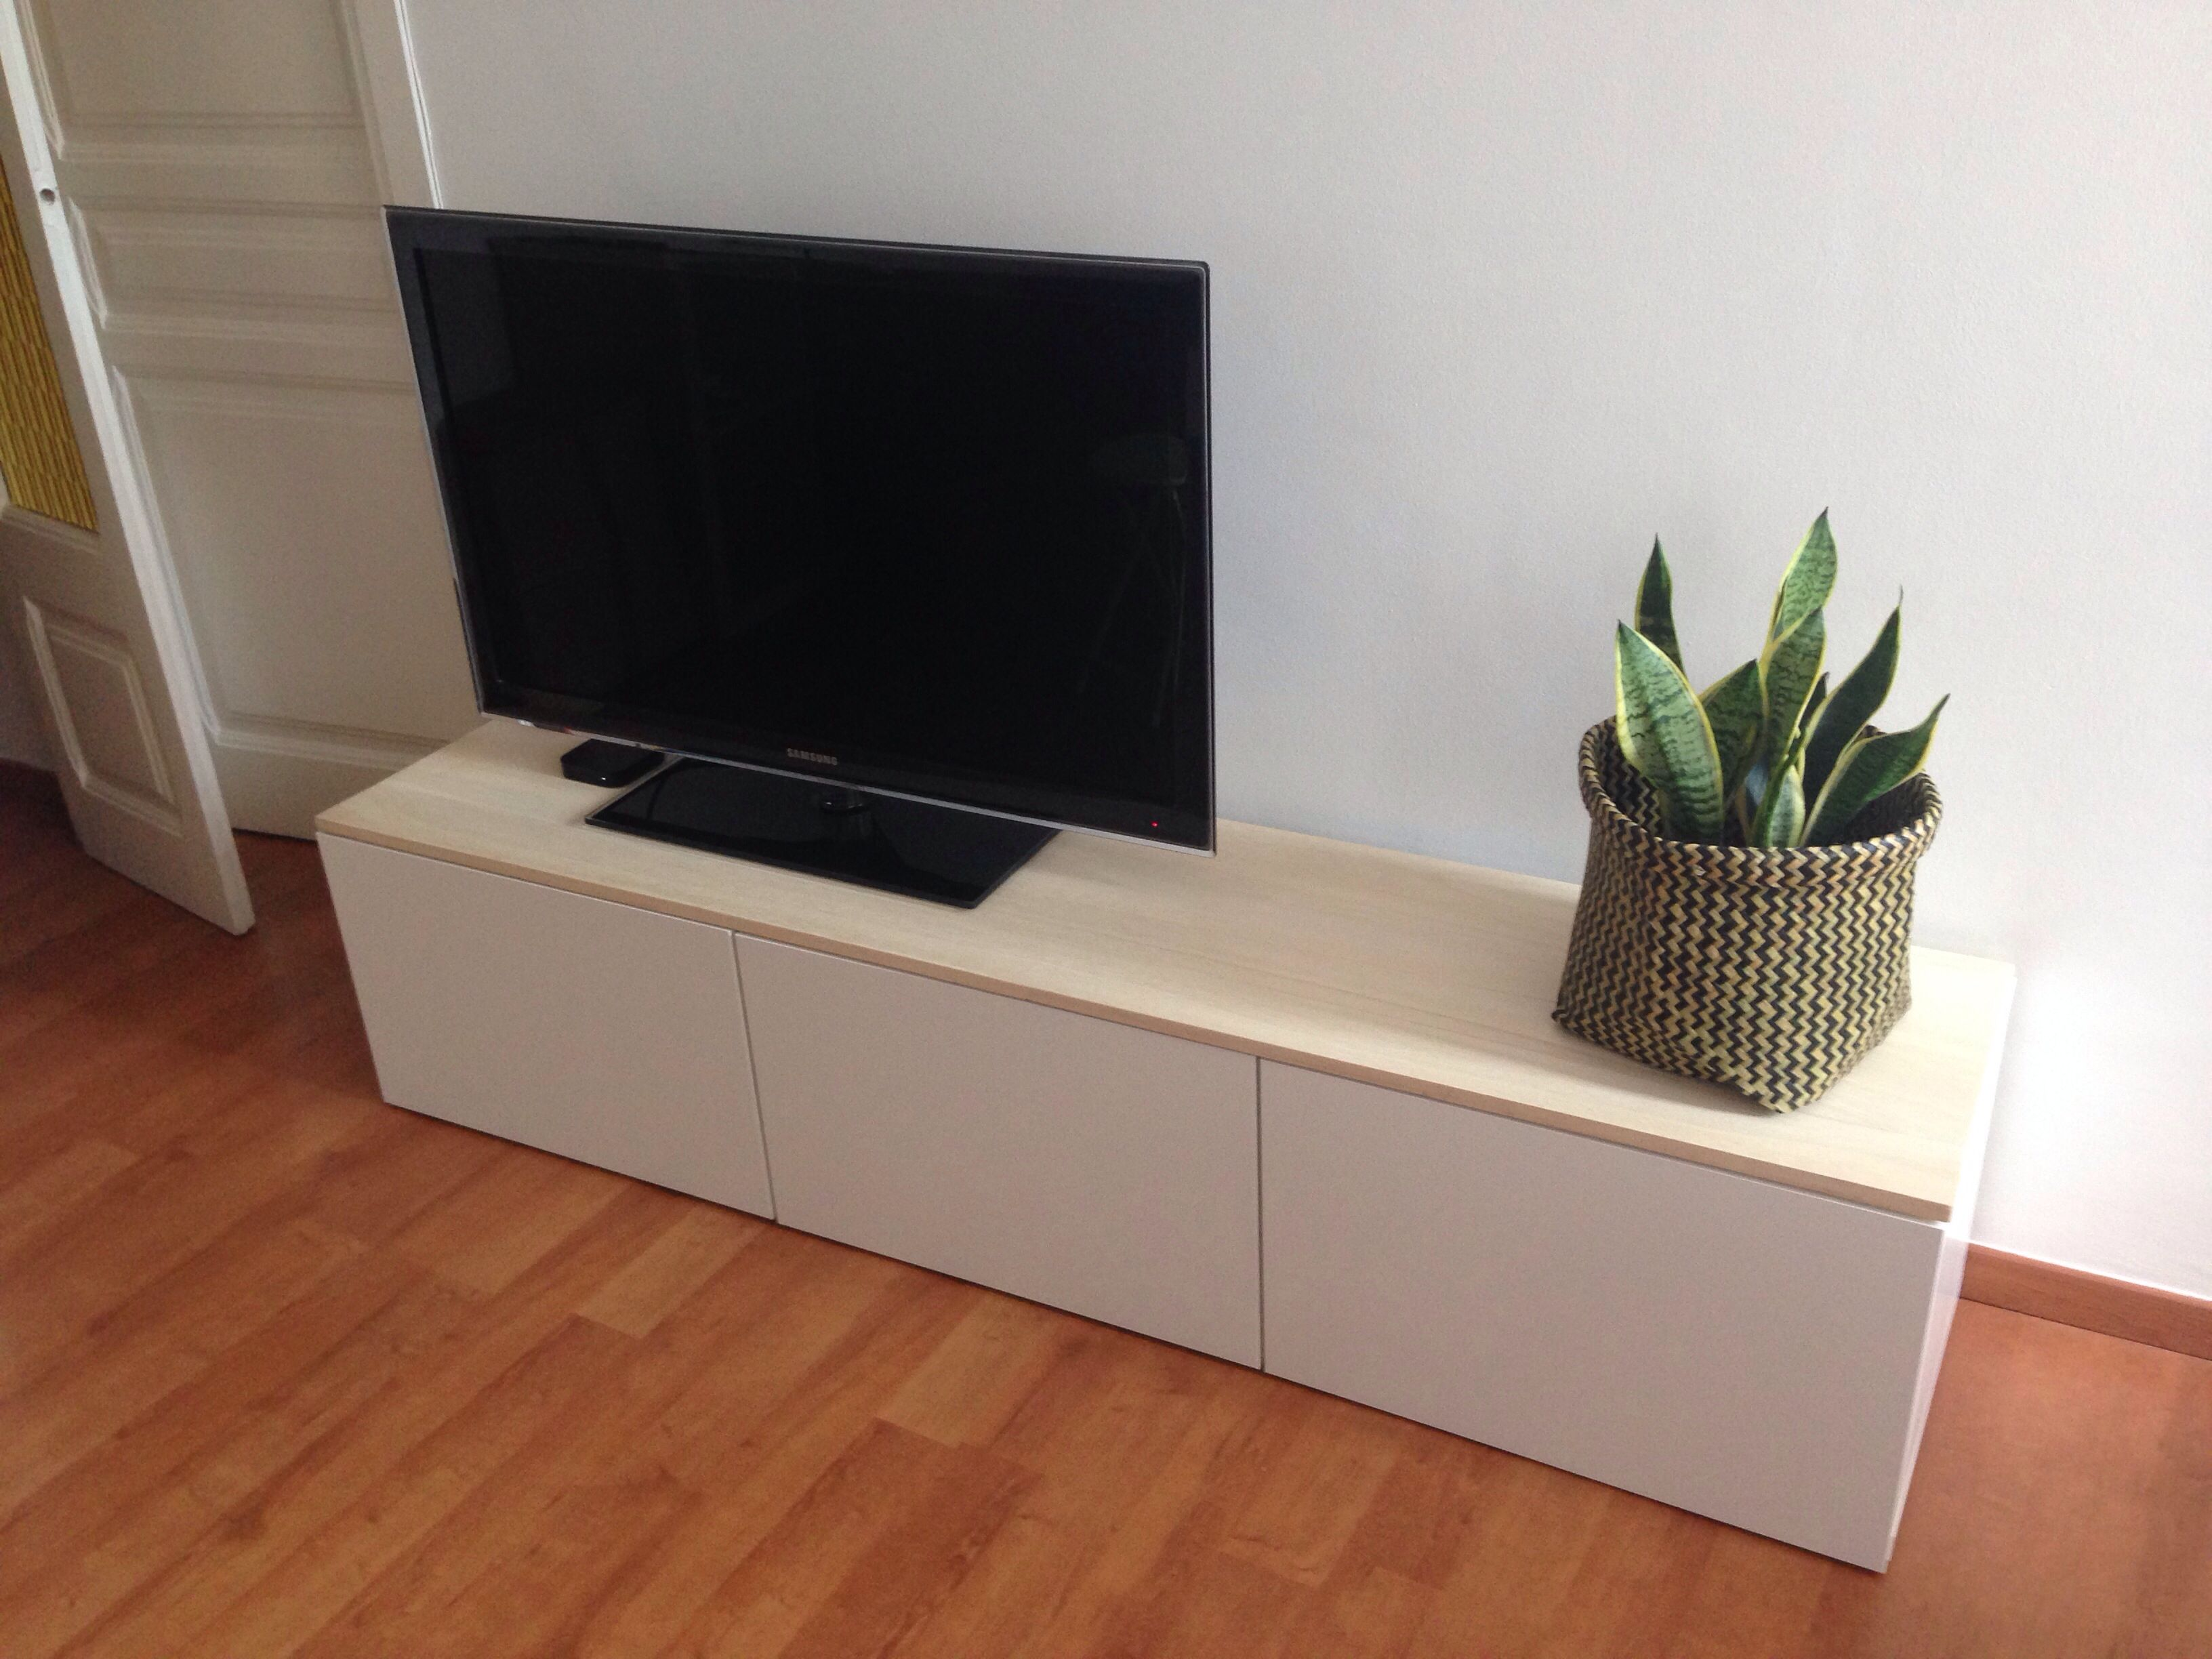 Holzvertäfelung Tv Mueble Tv Besta Blanco De Ikea Decorado Con Tablón De Madera De